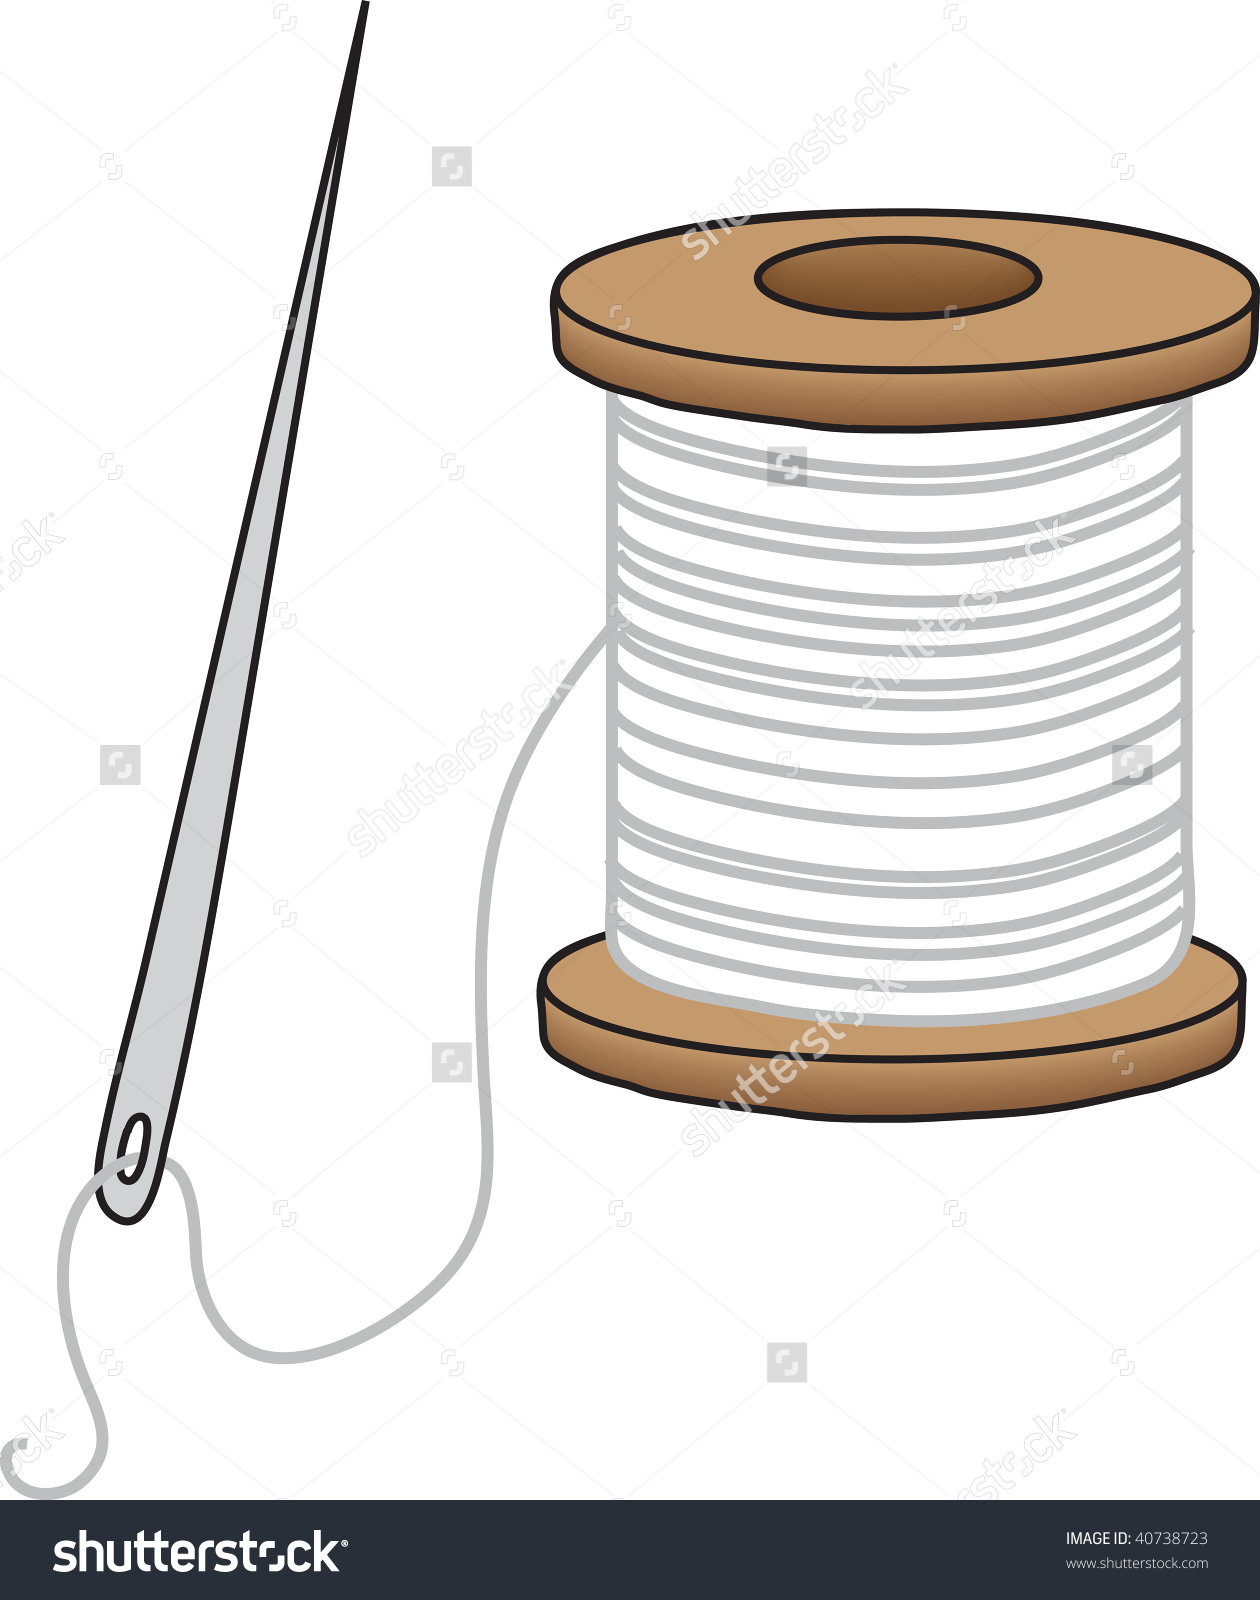 Clipart Illustration Sewing Needle Spool White Stock Illustration.